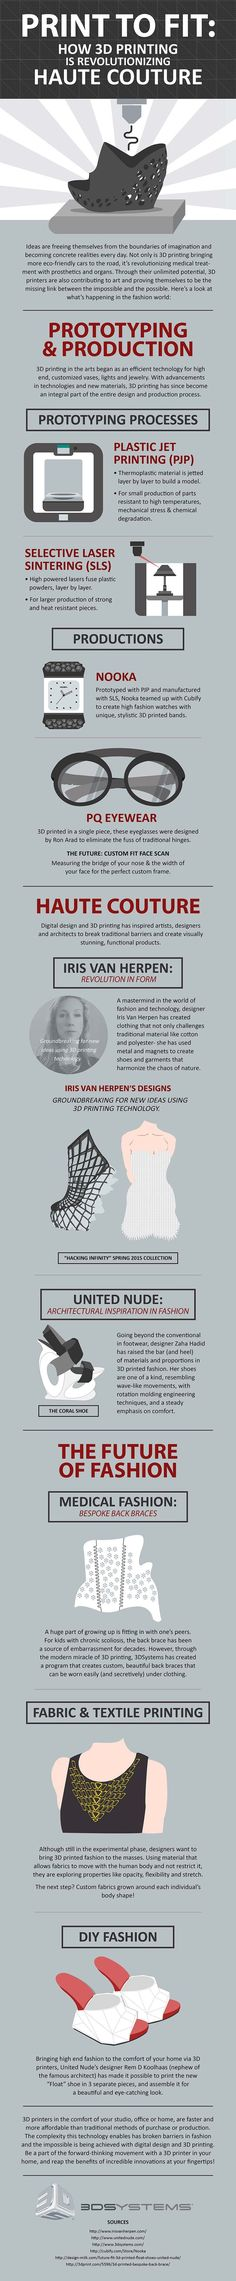 A Beautiful Little Life // How 3D Printing is Revolutionizing Haute Couture! Maybe something for 3D Printer Chat?